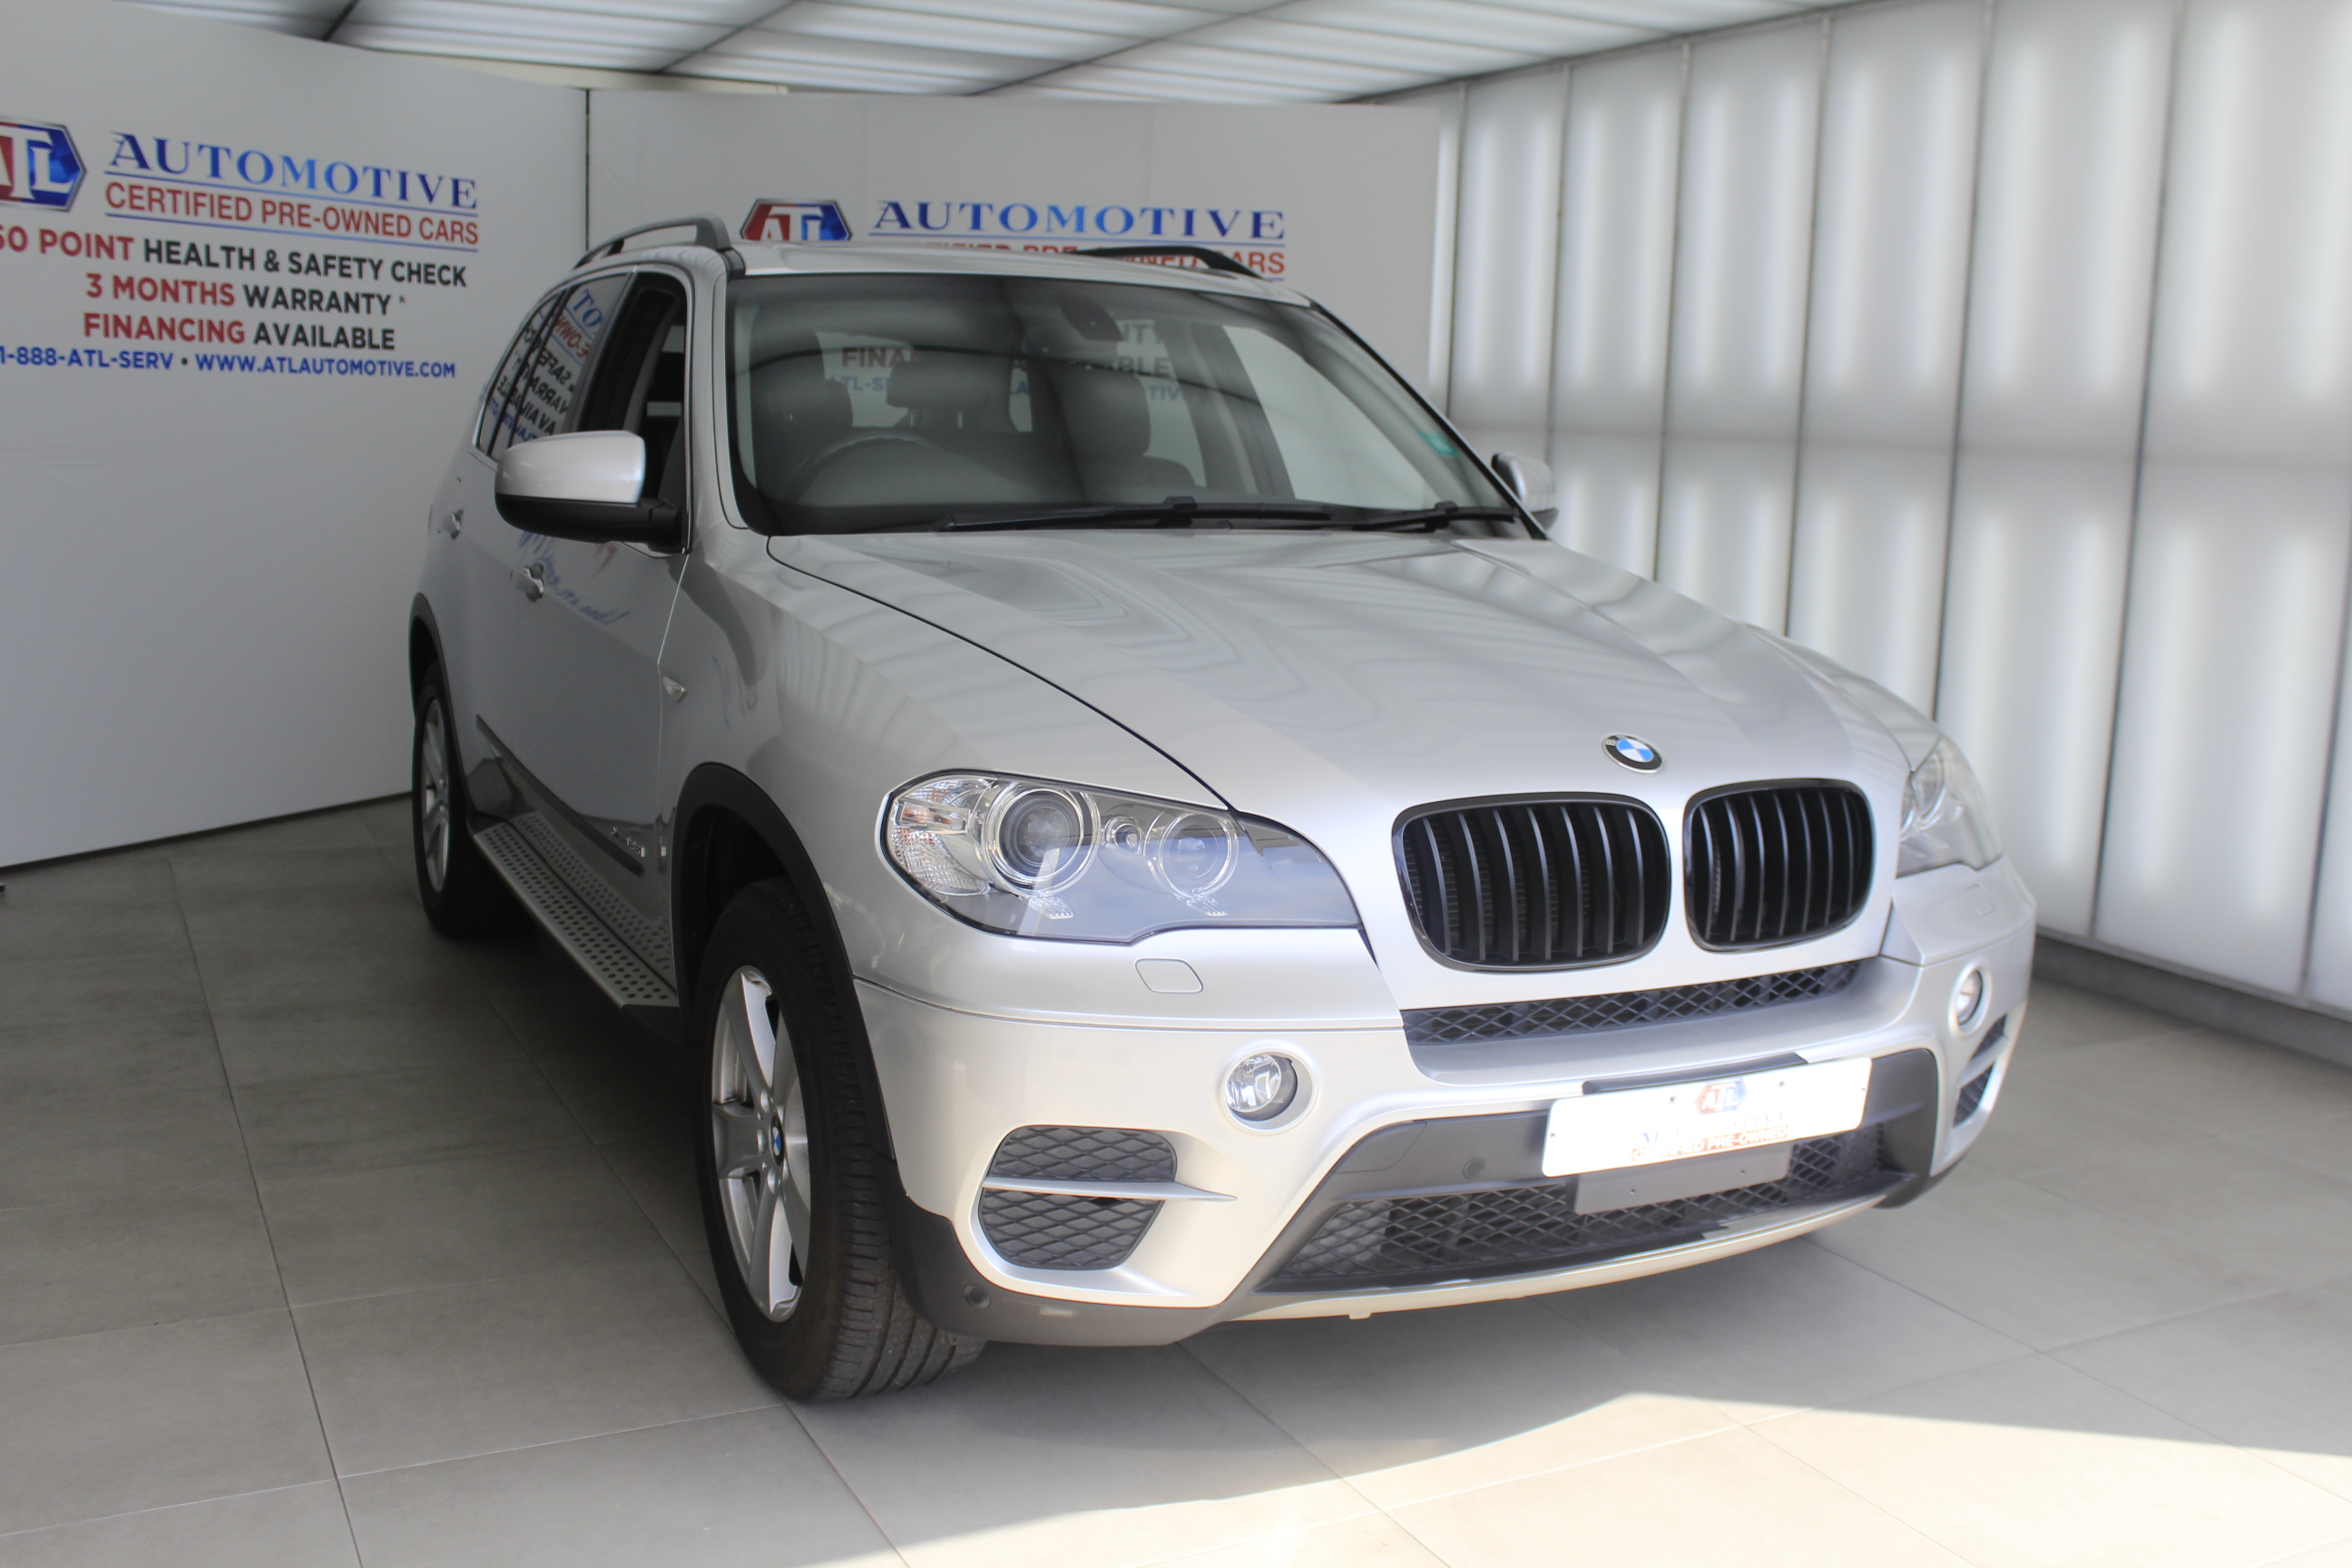 fr in used for xdrive new with sale full warranty bmw auto dubai well luxury experience listings suv steer years